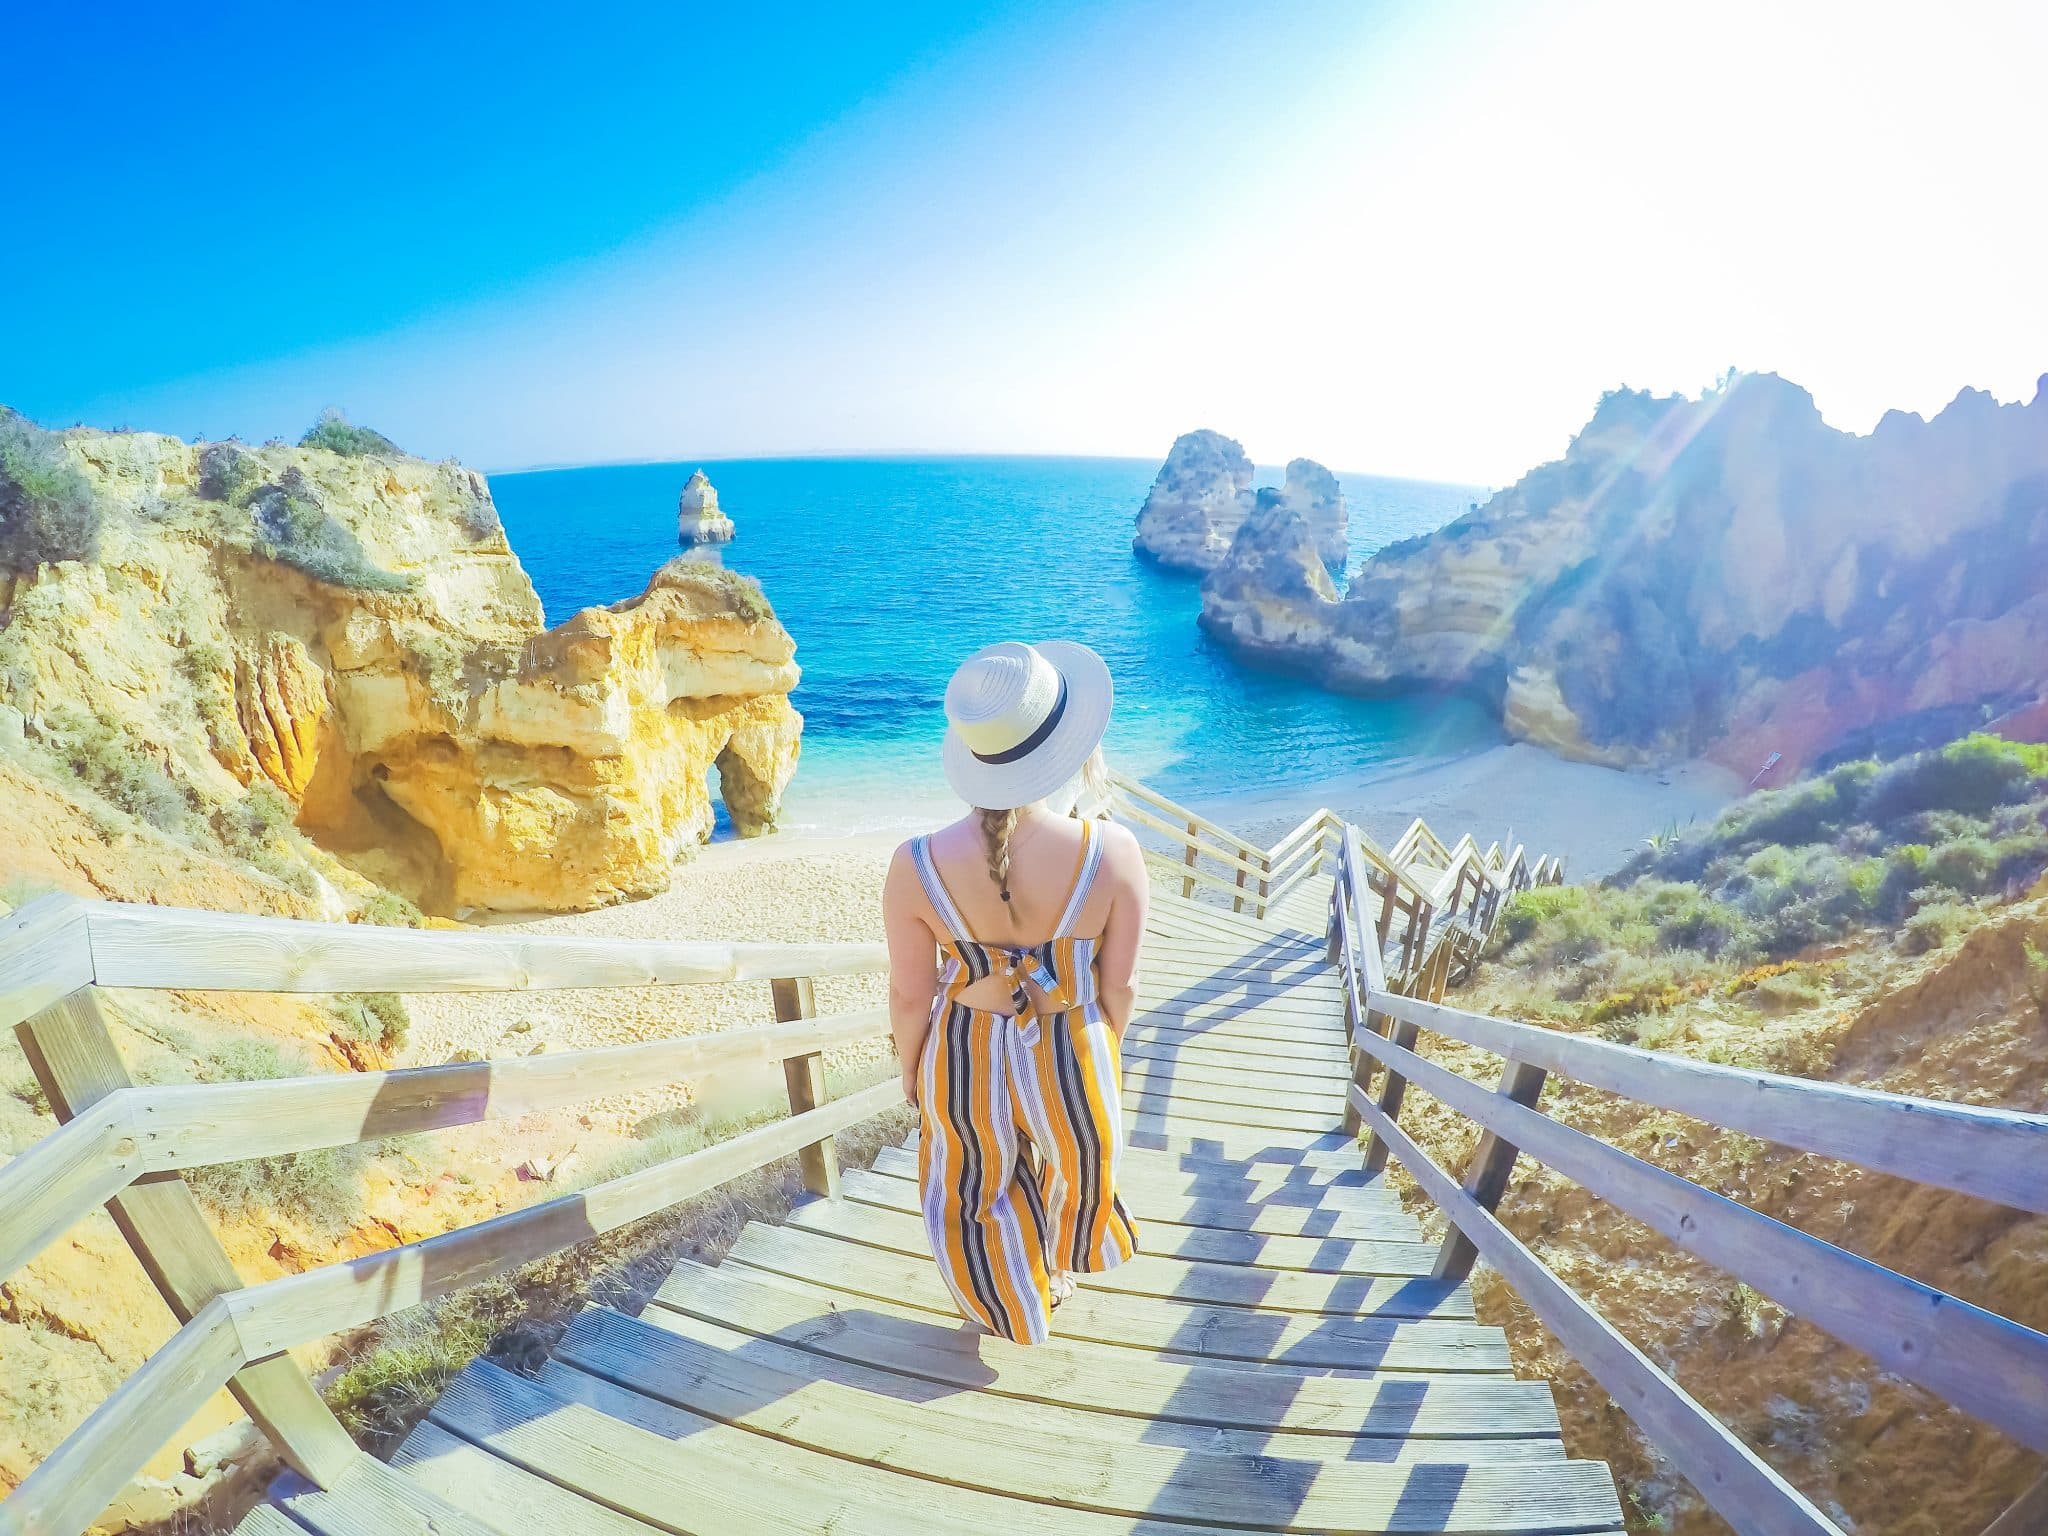 Where to Find the Best Beaches in Algarve, Portugal